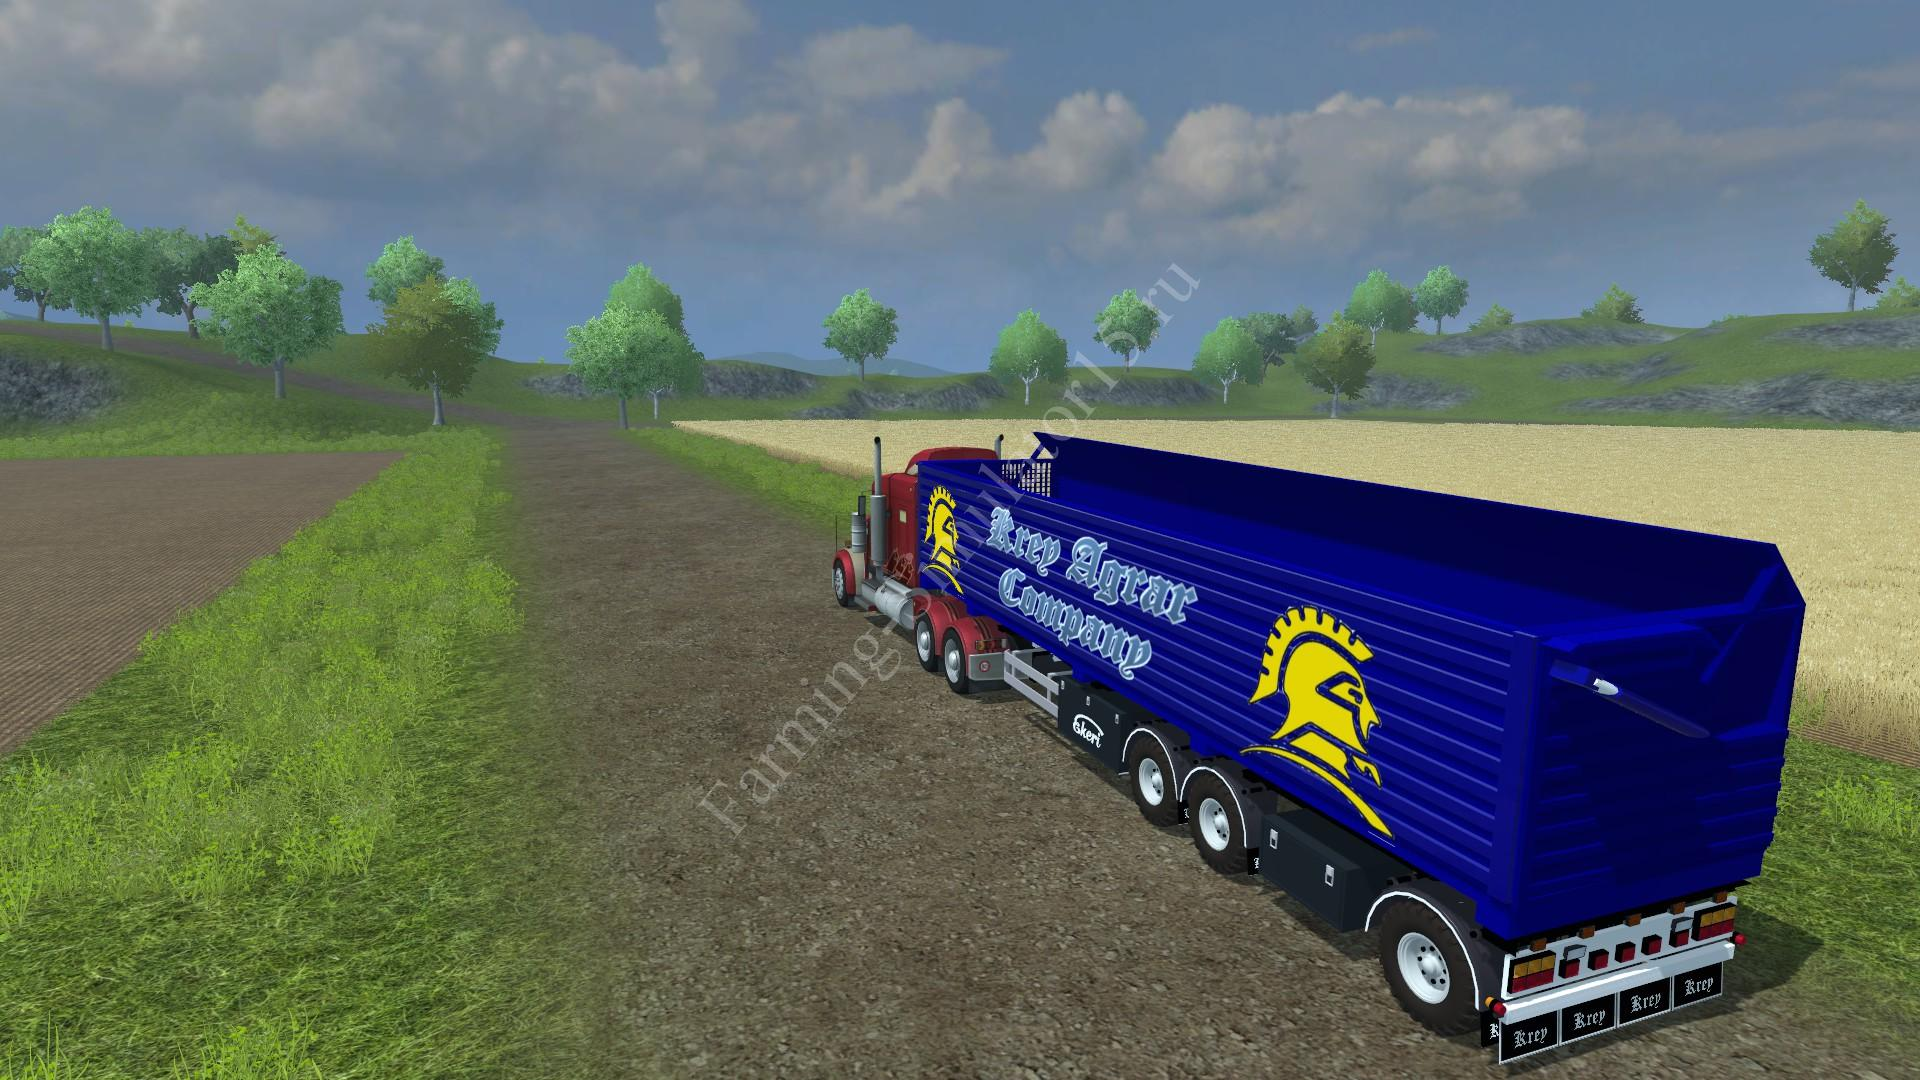 Мод прицепа для силоса HW Big Trailer v 1.0 Farming Simulator 2013, Farming Simulator 13